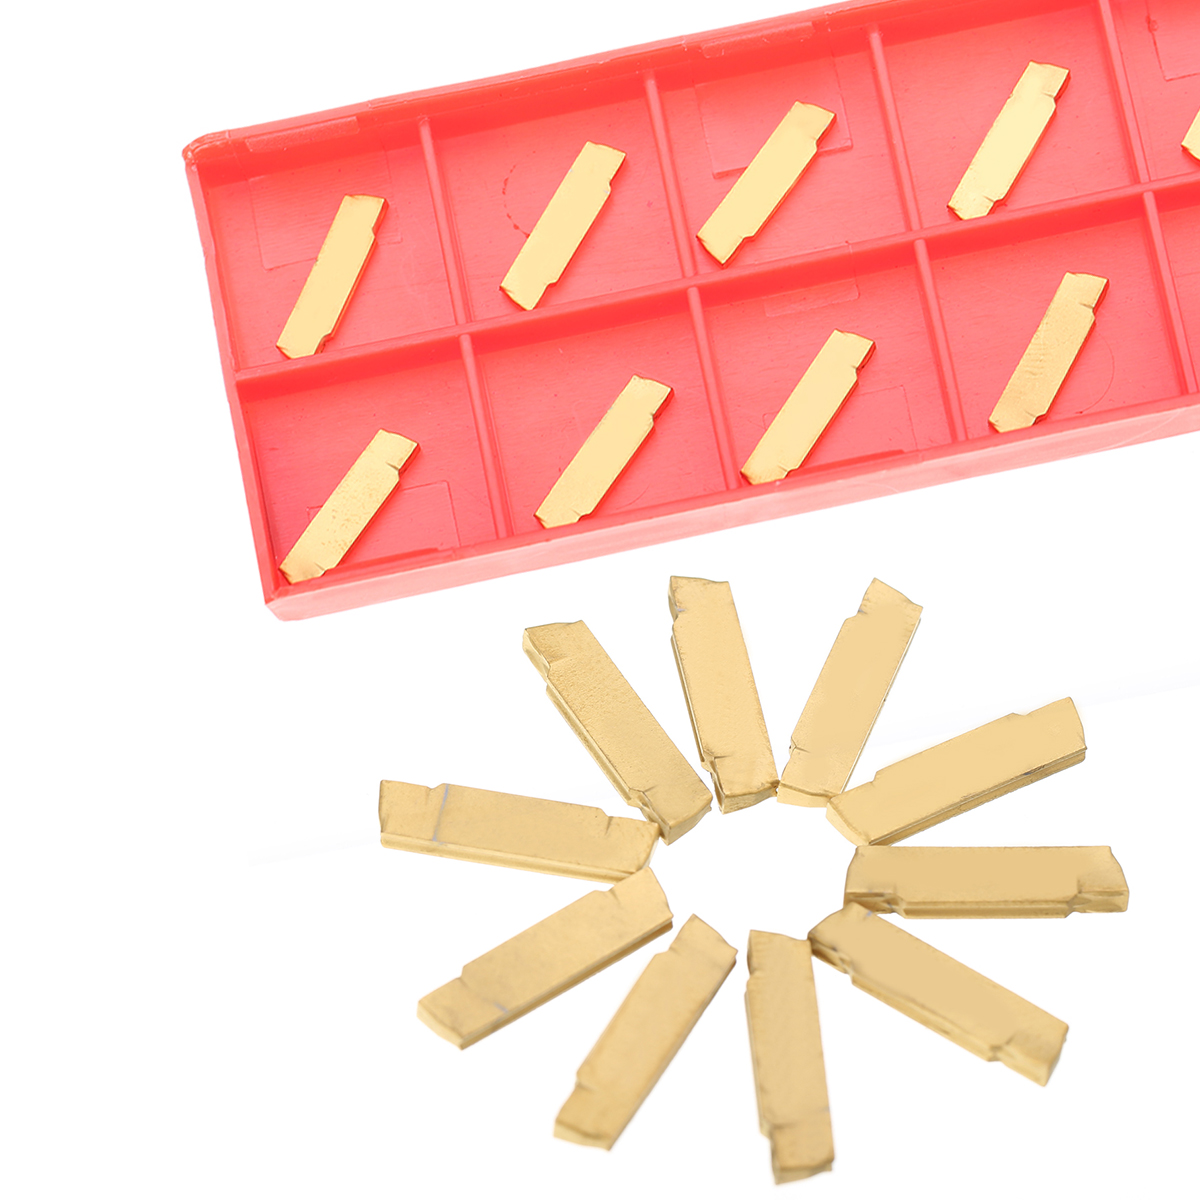 10pcs MGMN200-G Carbide Inserts 2mm Thickness Golden Cutter Parting off Blades for MGEHR/MGIVR Grooving Cutting Tool10pcs MGMN200-G Carbide Inserts 2mm Thickness Golden Cutter Parting off Blades for MGEHR/MGIVR Grooving Cutting Tool